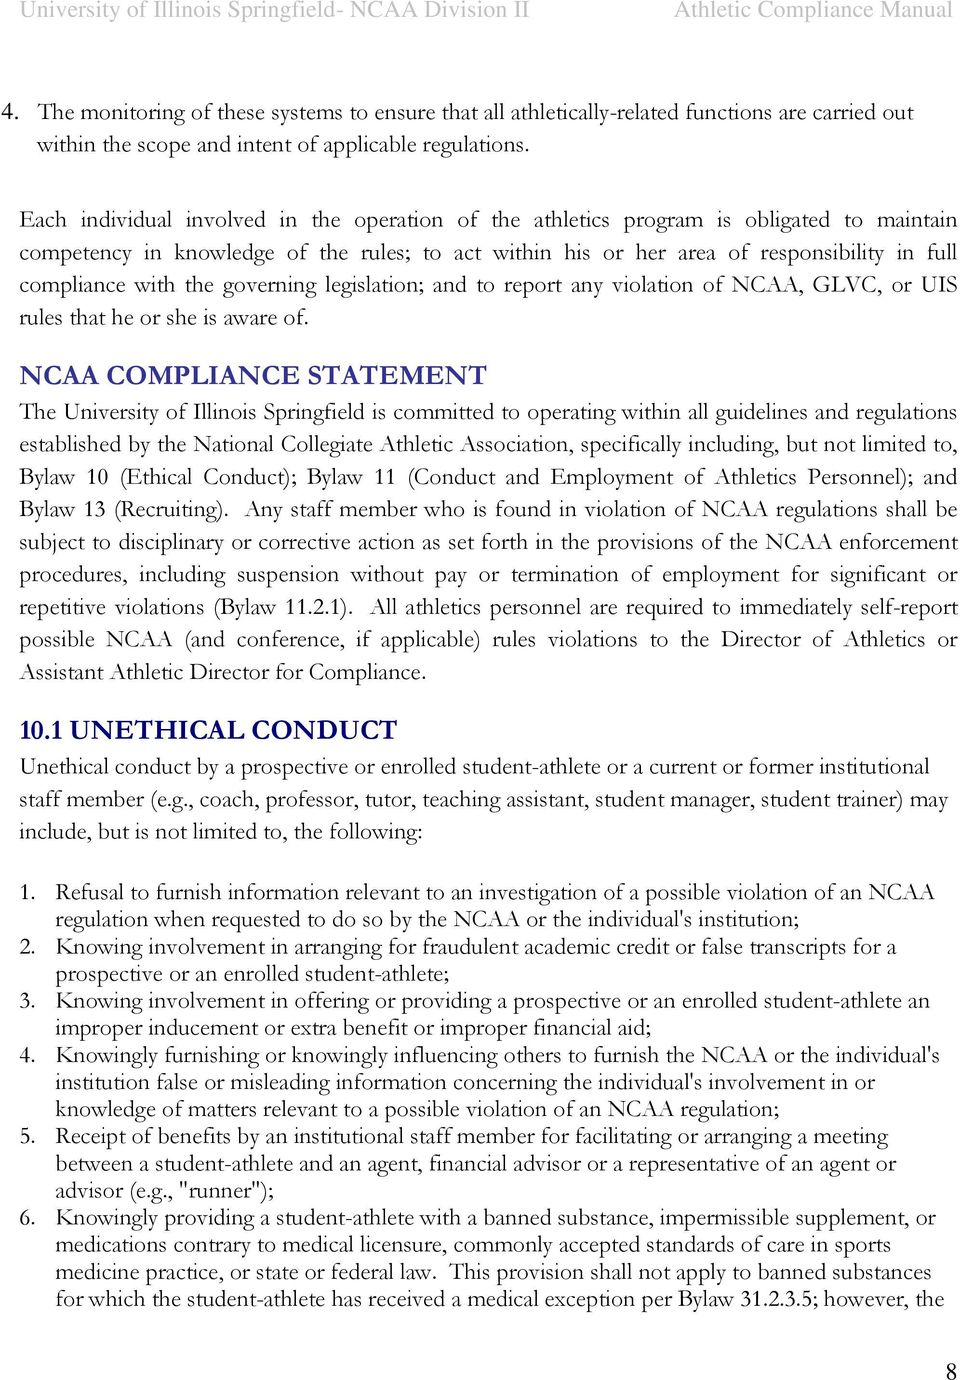 with the governing legislation; and to report any violation of NCAA, GLVC, or UIS rules that he or she is aware of.